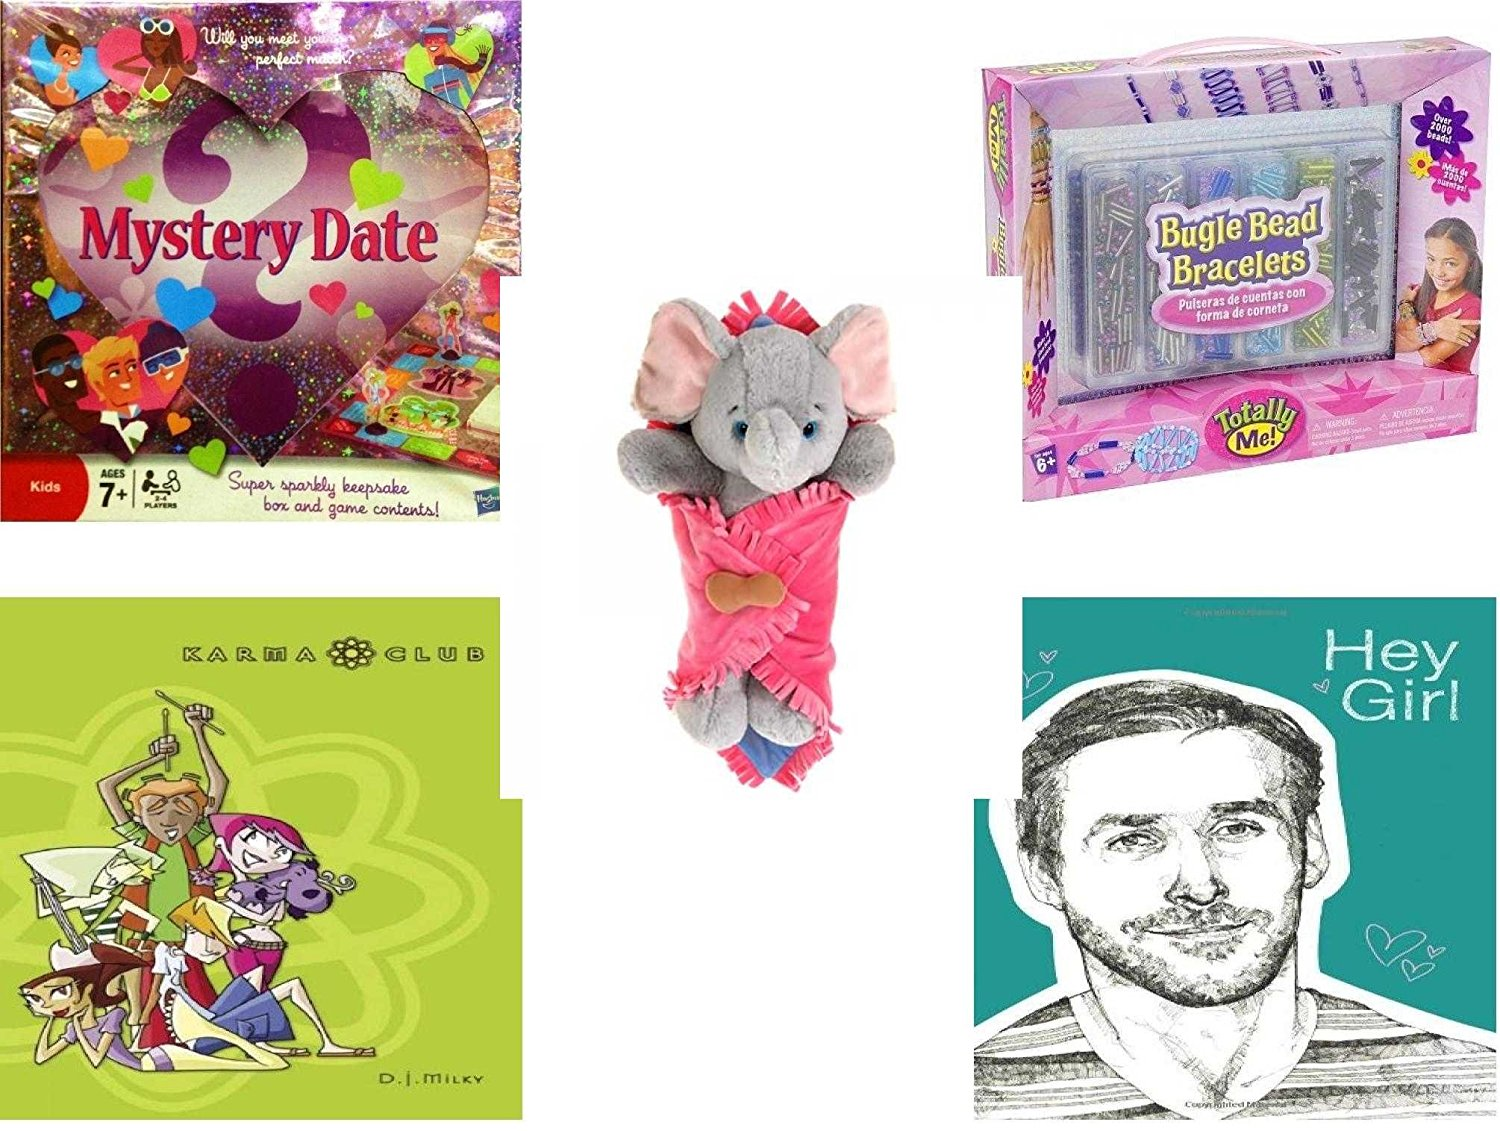 "Girl's Gift Bundle - Ages 6-12 [5 Piece] - Mystery Date Sparkle and Shine Game - Totally Me. Bugle Bead Bracelets Kit Toy - Elephant Blanket Babies Plush Stuffed Animal Toy 11"" - Attack of the Gree"